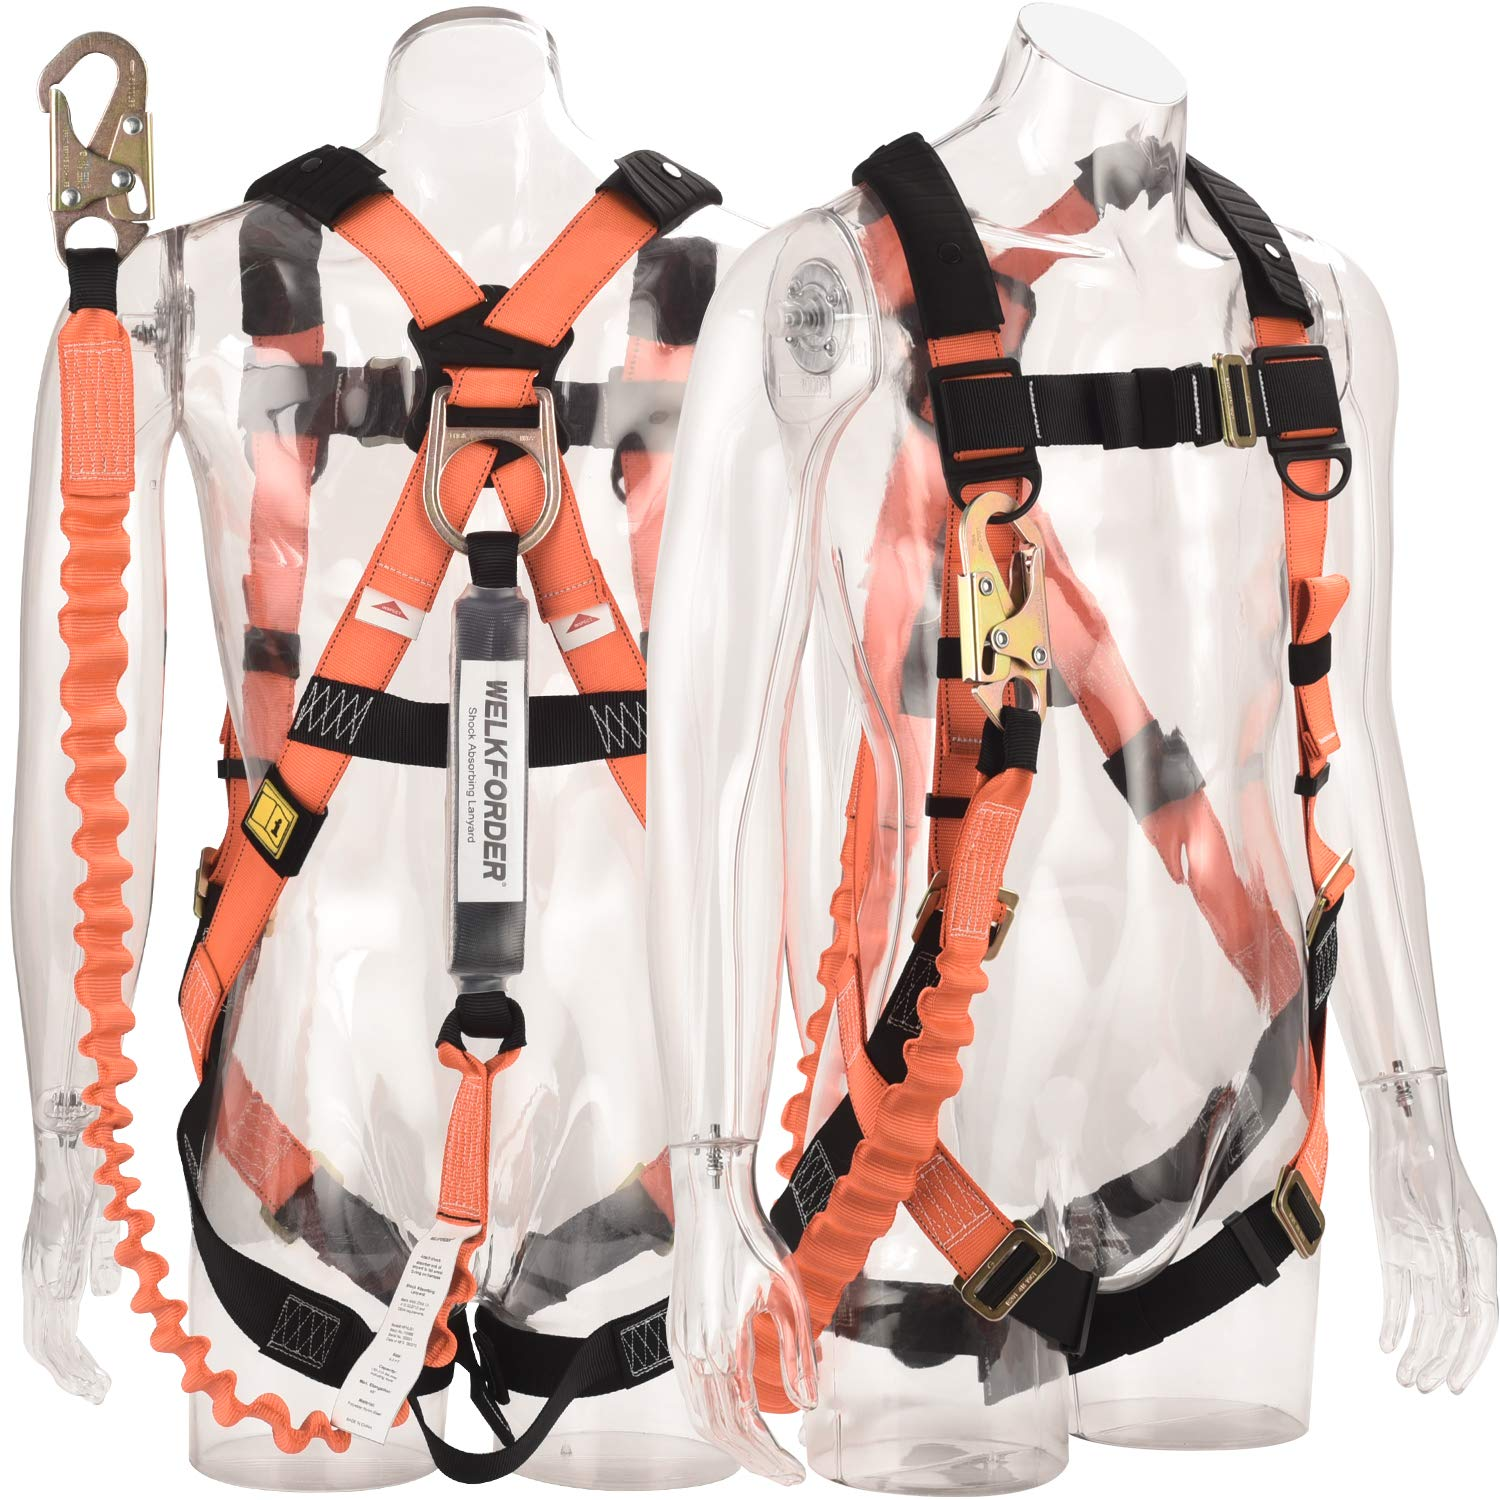 WELKFORDER 1D-Ring Industrial Fall Protection Safety Harness with 6-Foot Shock Absorber Stretchable Lanyard [Snap Hook End]   Permanent attached Kit   ANSI Complaint Personal Fall Arrest System(PFAS)